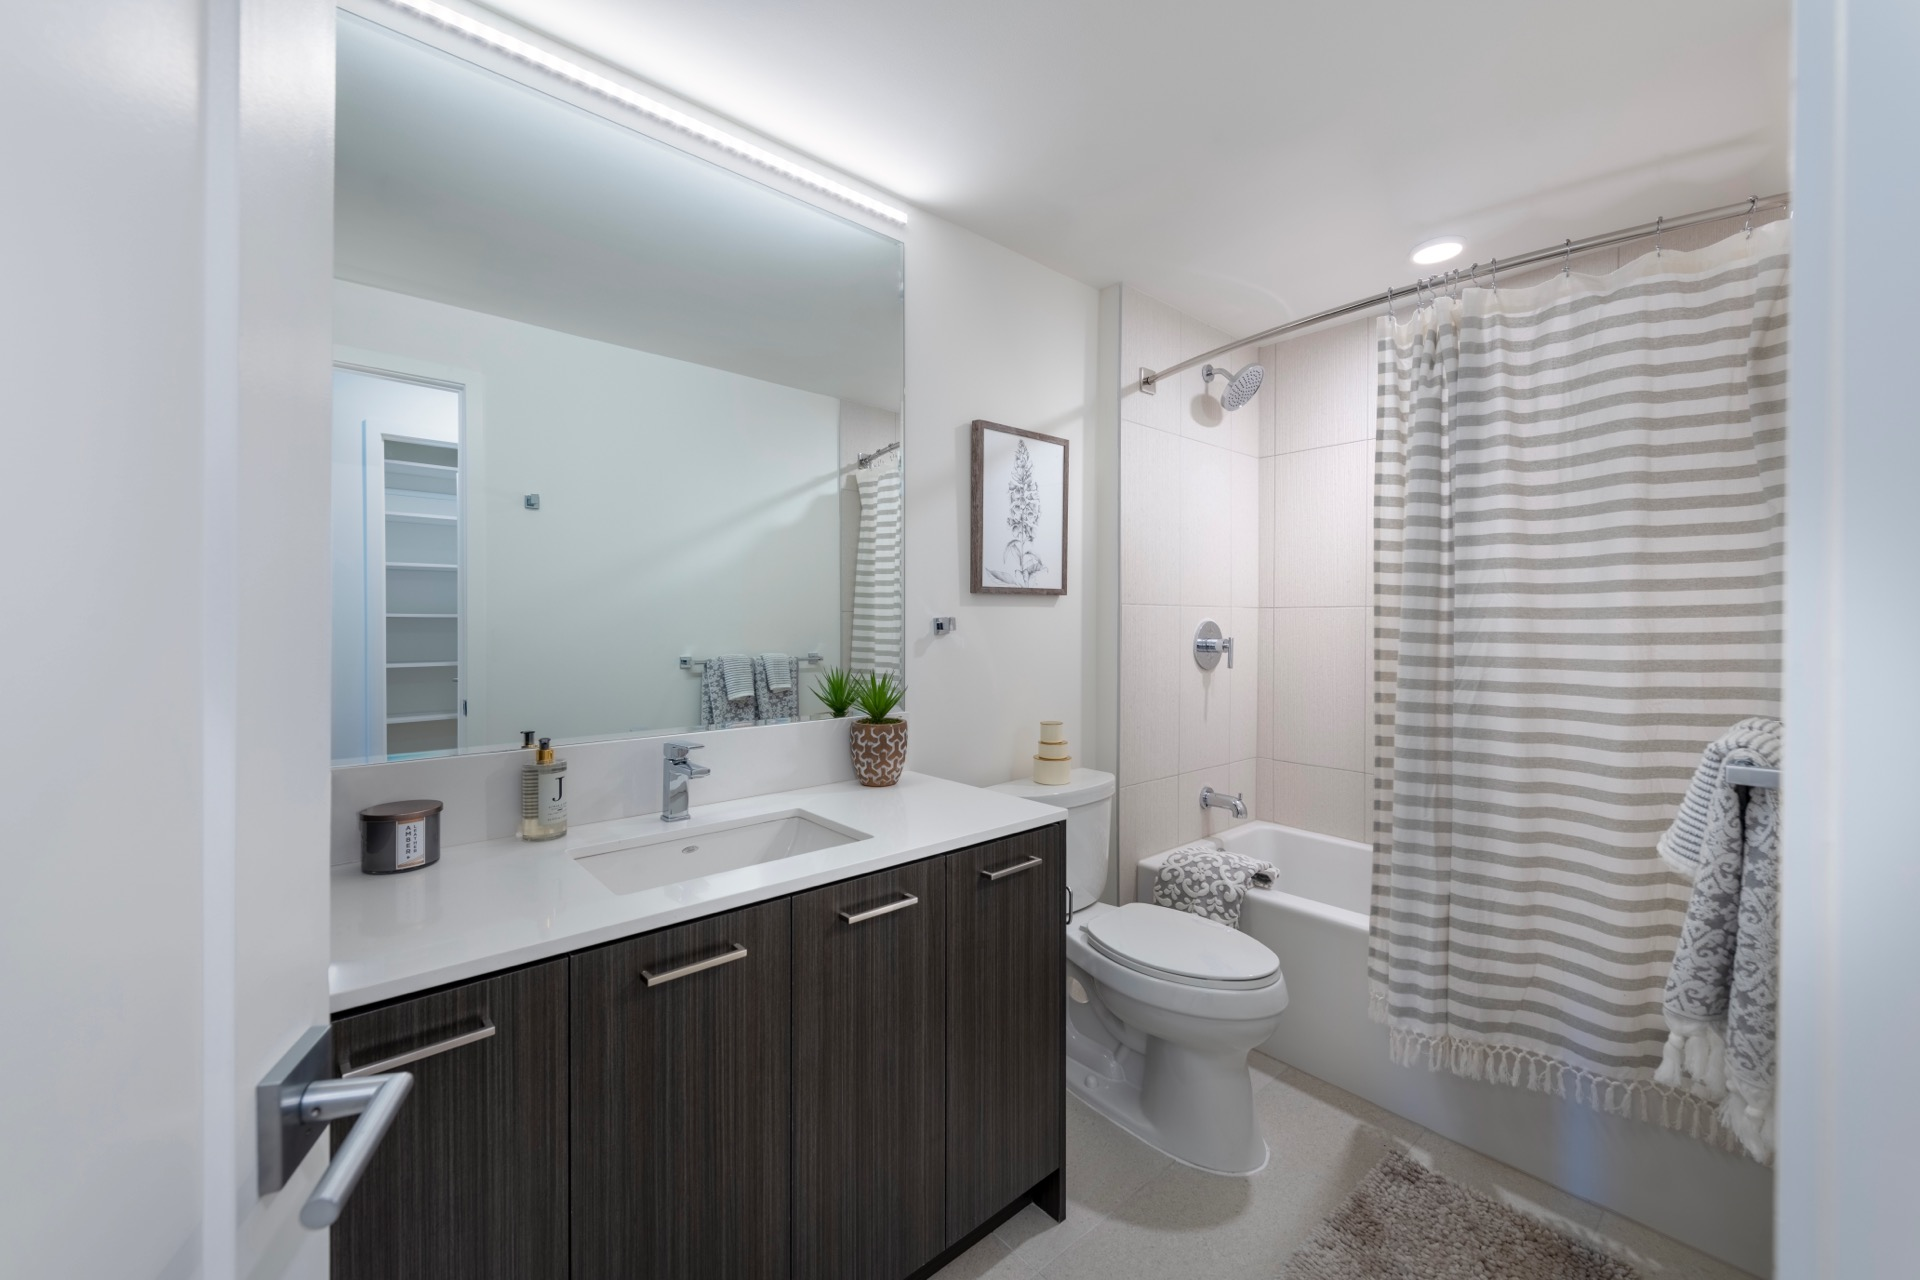 Backlit mirrors and walk-in showers or soaking tubs, perfect for your bathroom retreat.